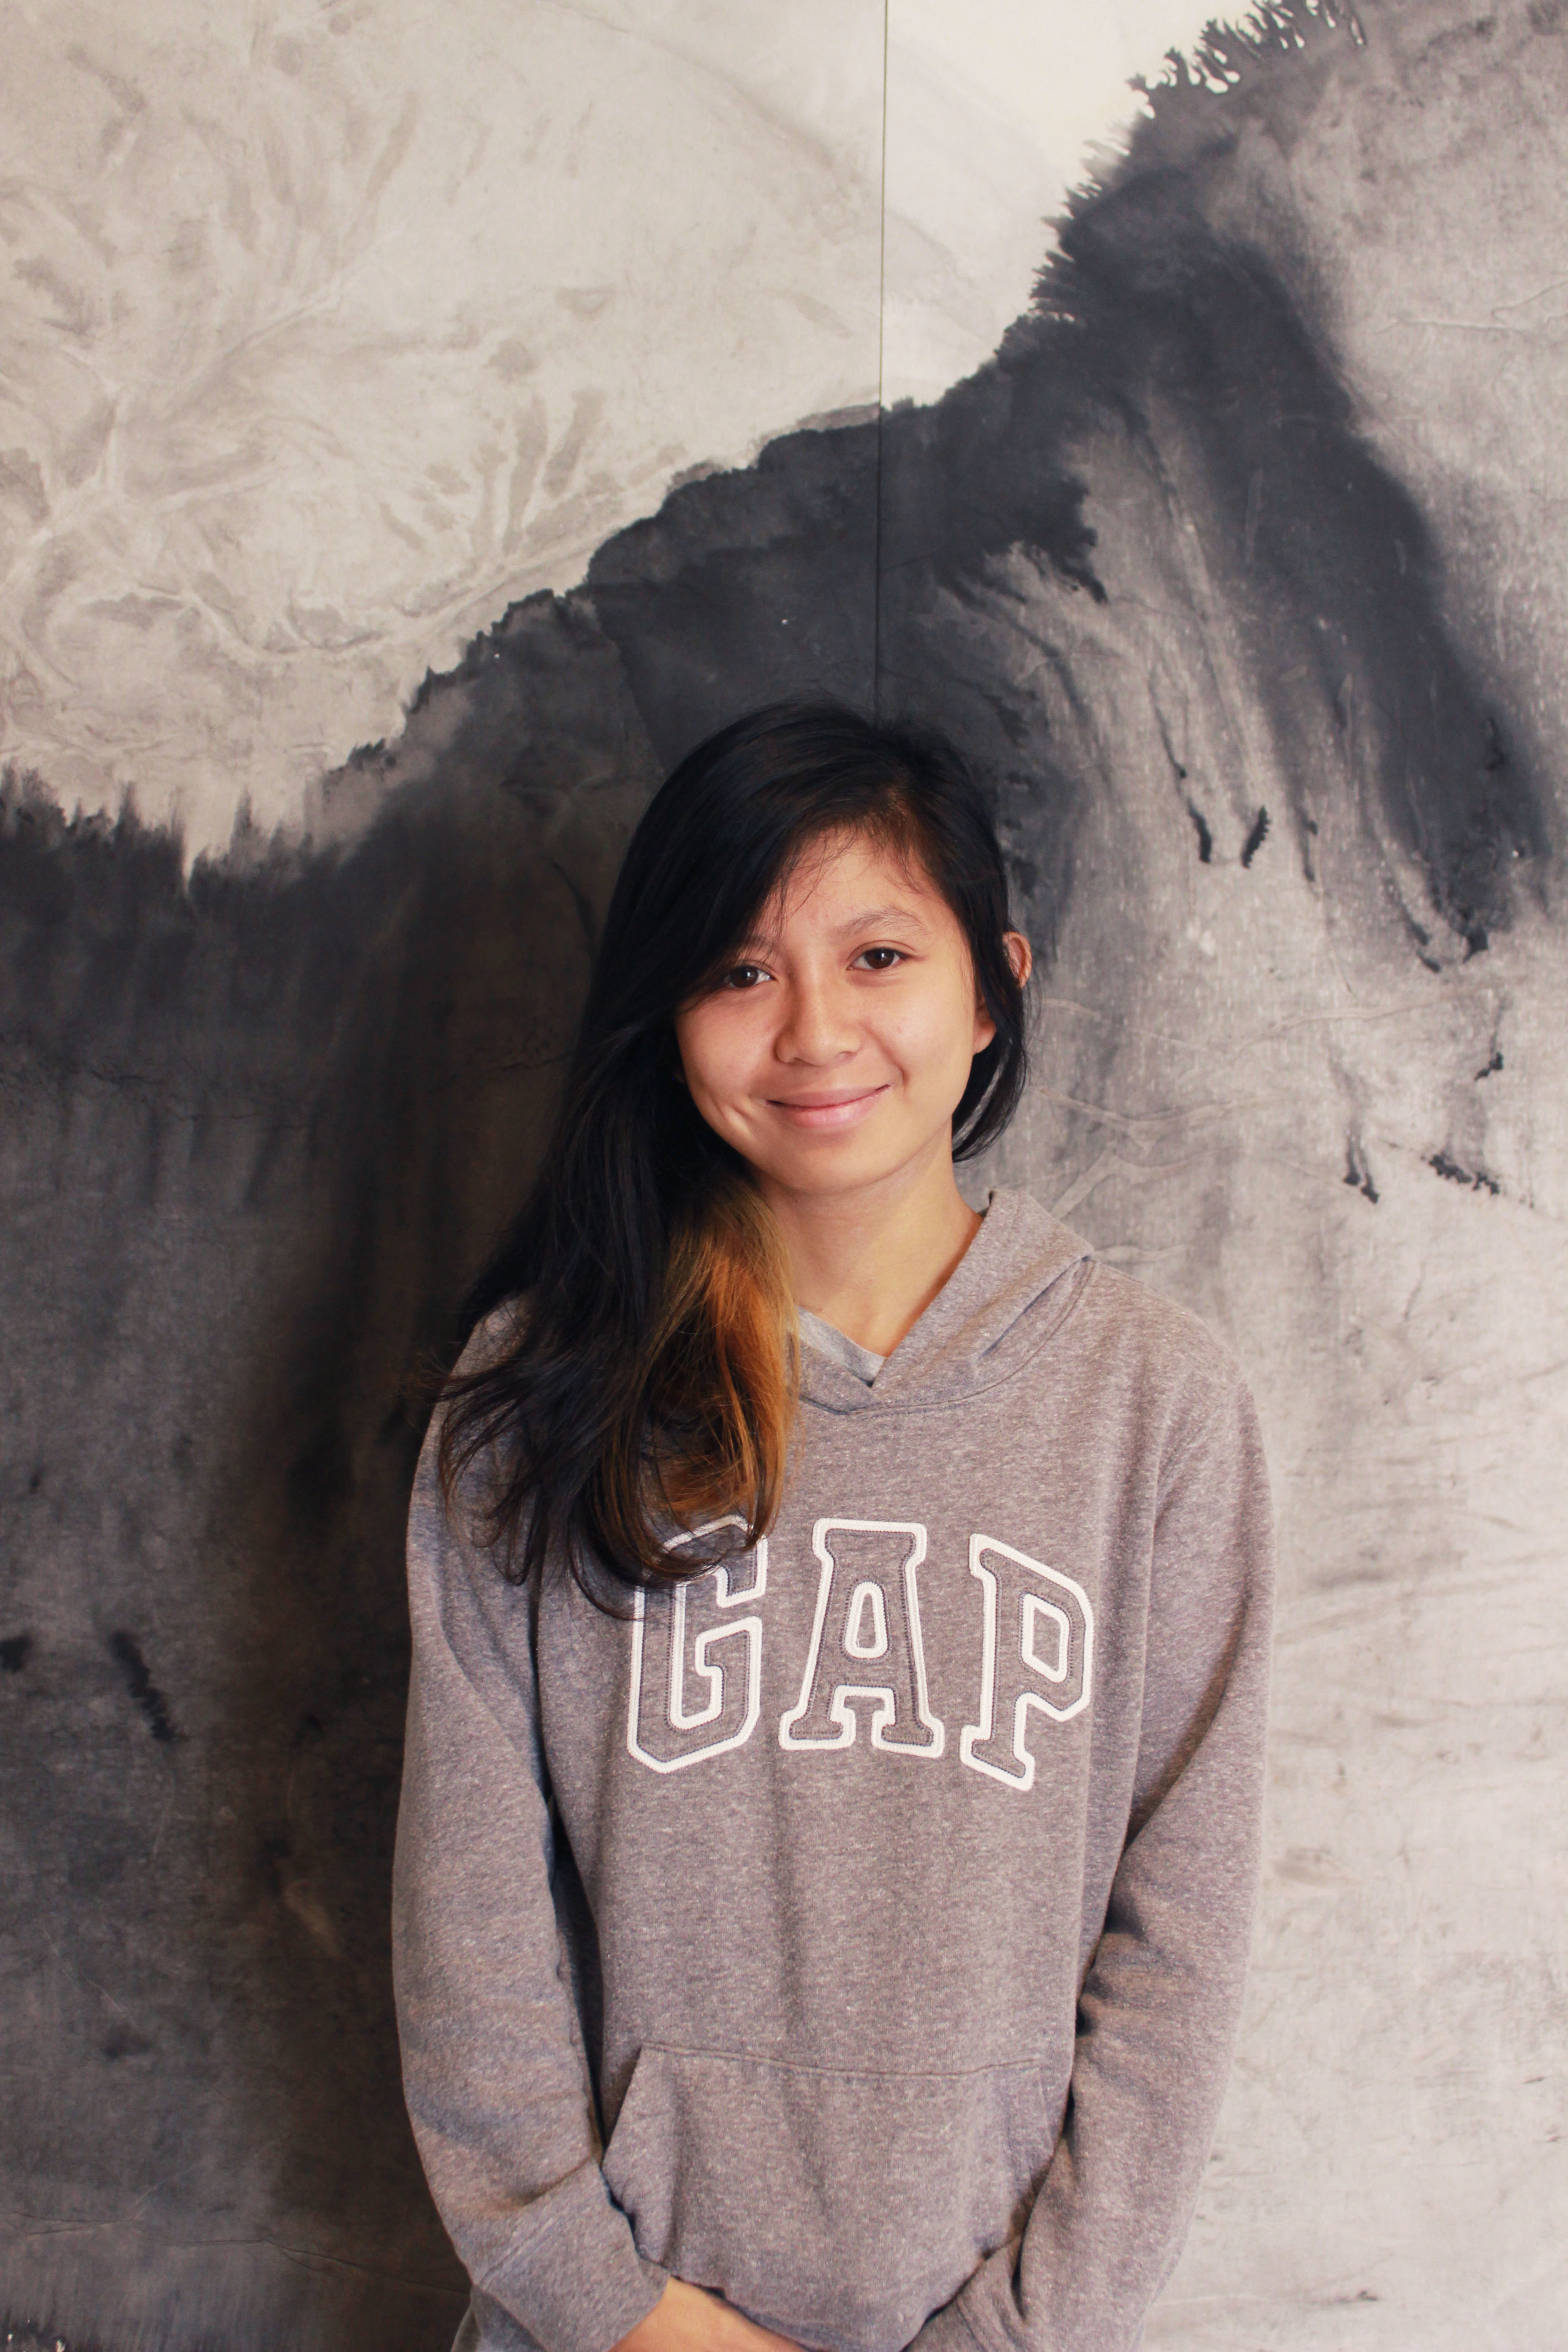 Hi! My name is Francyne Hari, I go by CC or Sap, like a tree. I'm a senior communications major with a focus in multimedia journalism and broadcasting. I'm hoping to become an audio engineer in the future as music and sound have become key components in my life. I've always wanted to be a writer and love to explore different venues and topics of writing. In my spare time I like to participate in medieval combat, watch films, read, play video games, listen to music and write.